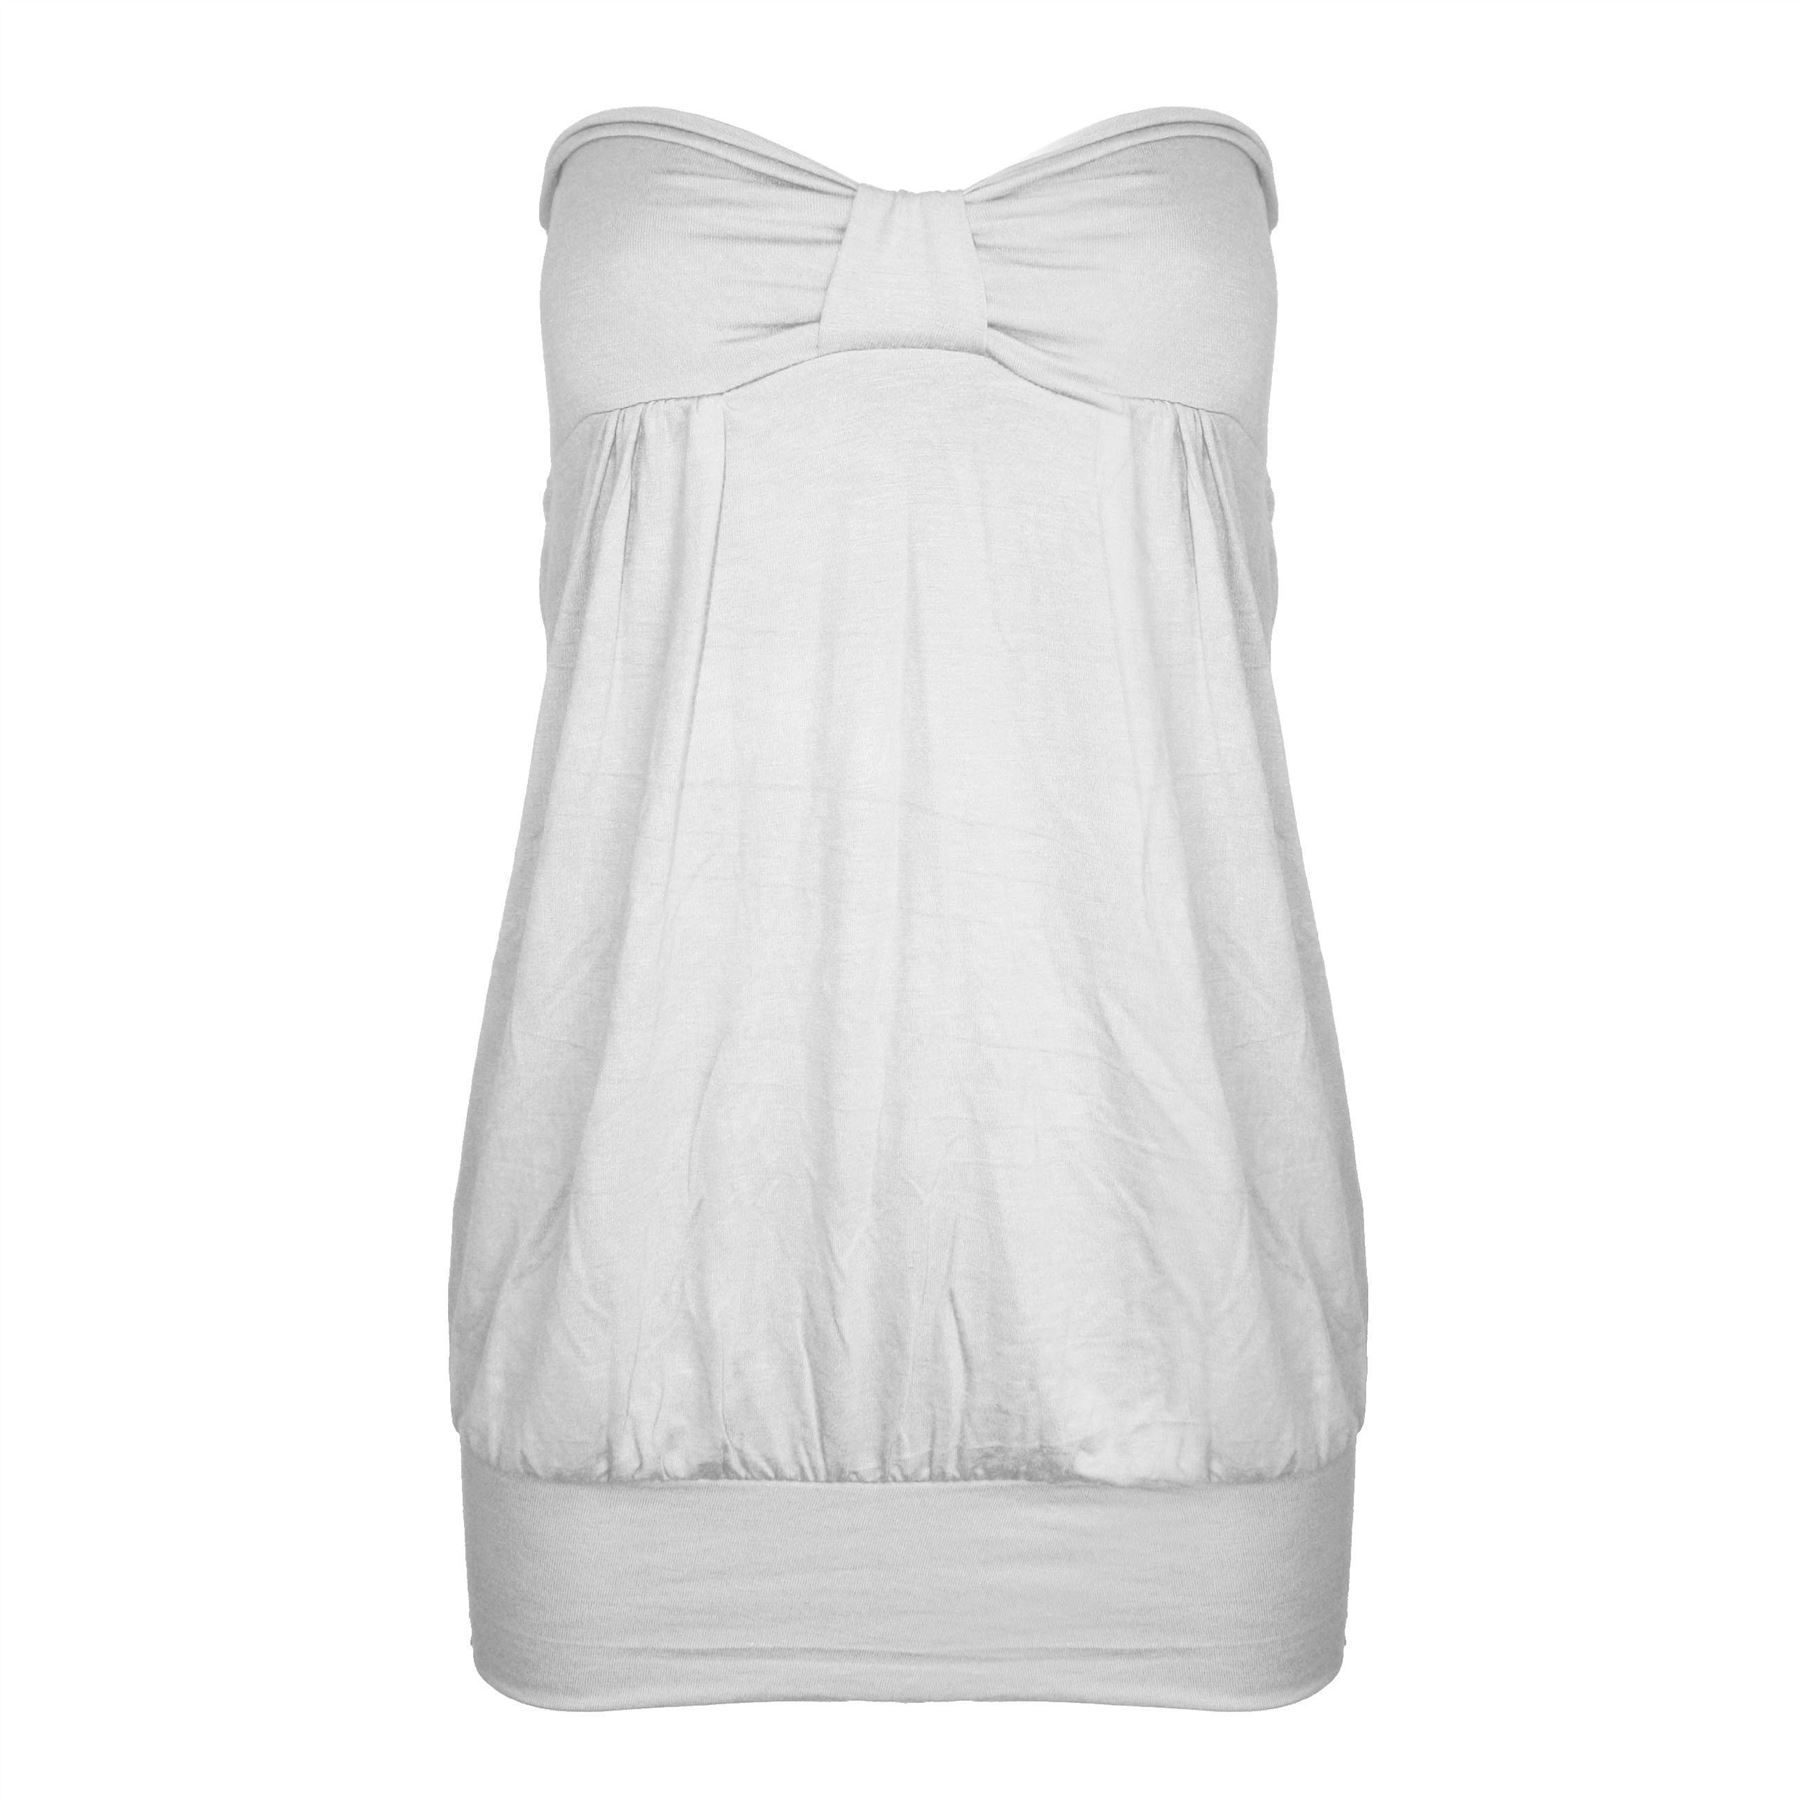 5864cec2f6 Womens-Strapless-Summer-Ladies-Casual-Front-Knot-Bandeau-Boobtube-Top -Plus-Sizes